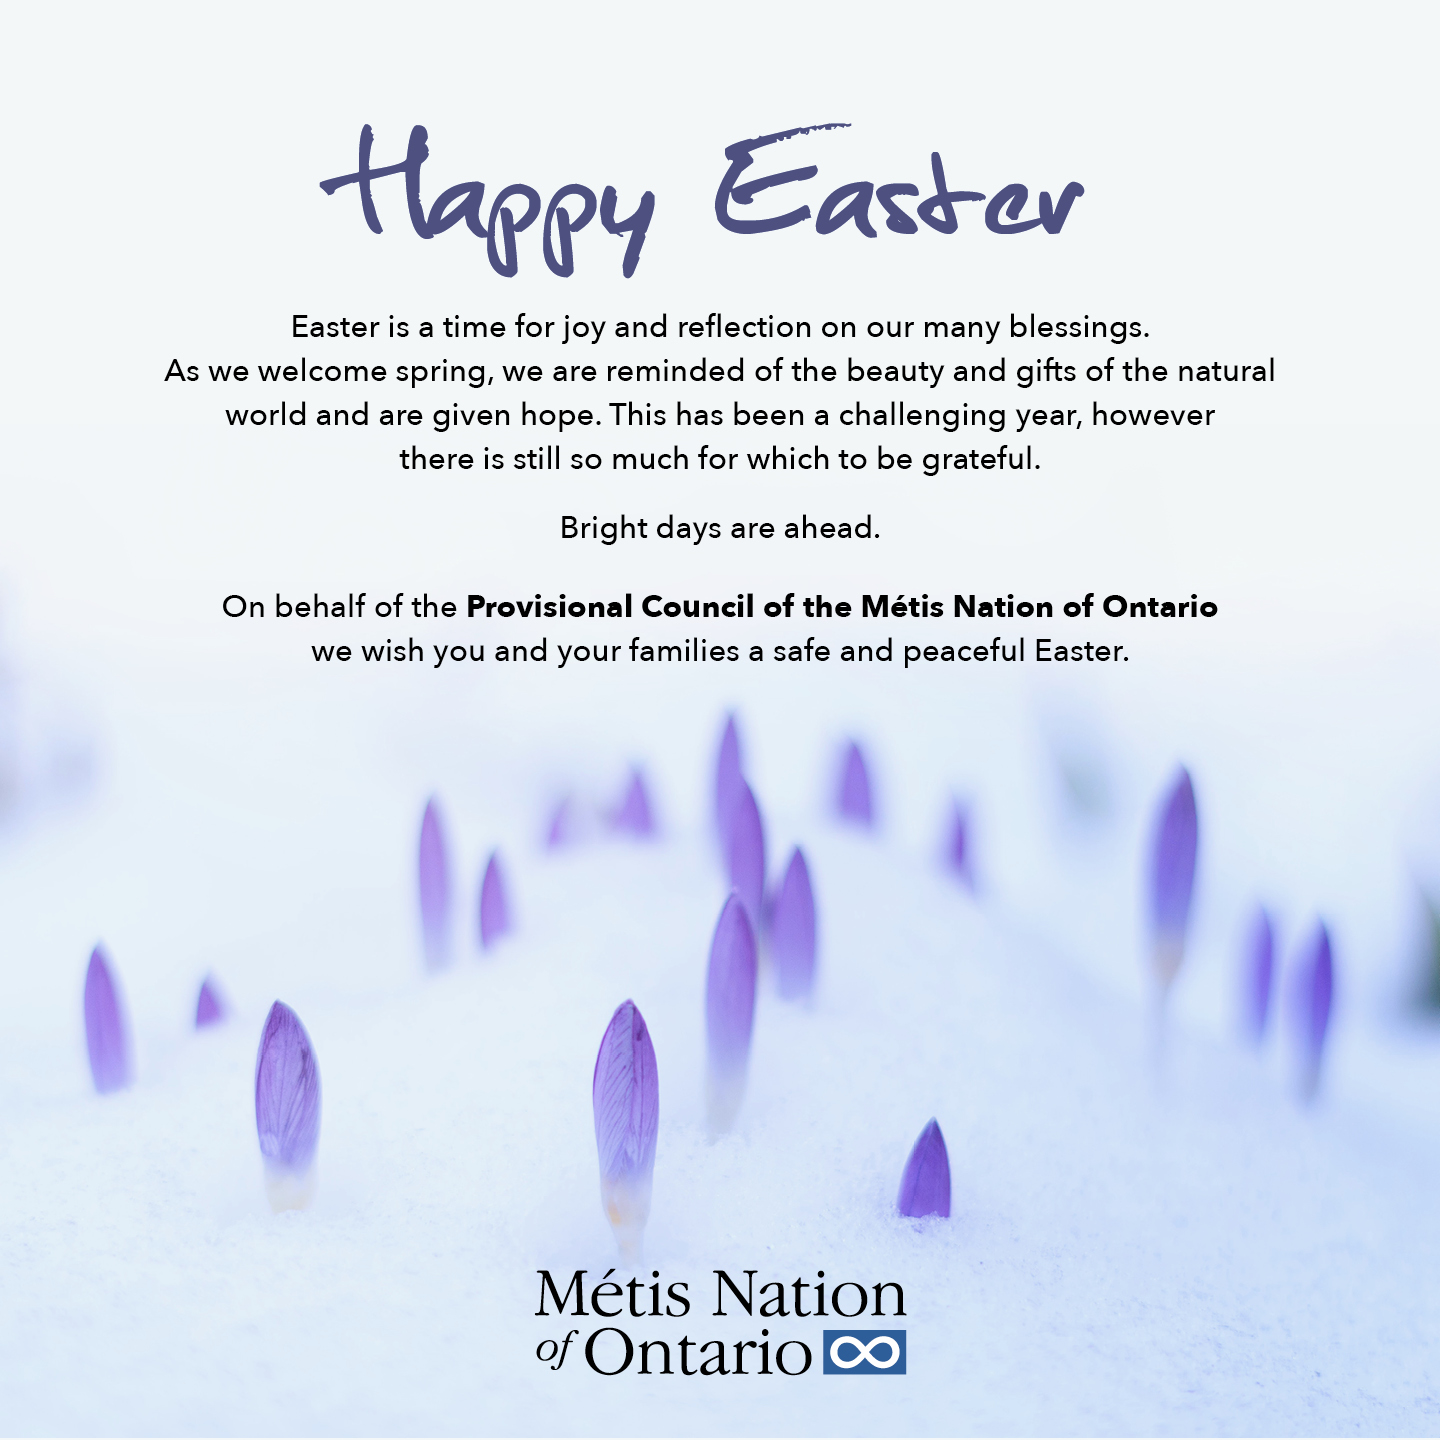 Happy Easter Easter is a time for joy and reflection on our many blessings.  As we welcome spring, we are reminded of the beauty and gifts of the natural world and are given hope. This has been a challenging year, however there is still so much for which to be grateful.  Bright days are ahead.  On behalf of the Provisional Council of the Métis Nation of Ontario we wish you and your families a safe and peaceful Easter